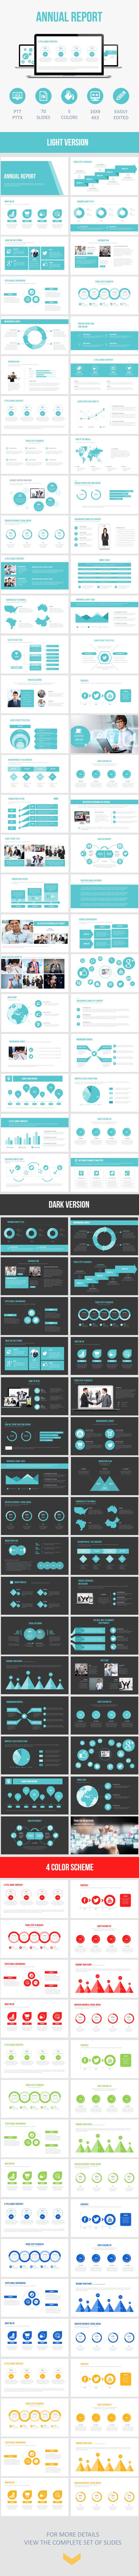 Annual Report (Powerpoint Templates) Image 20Preview 20